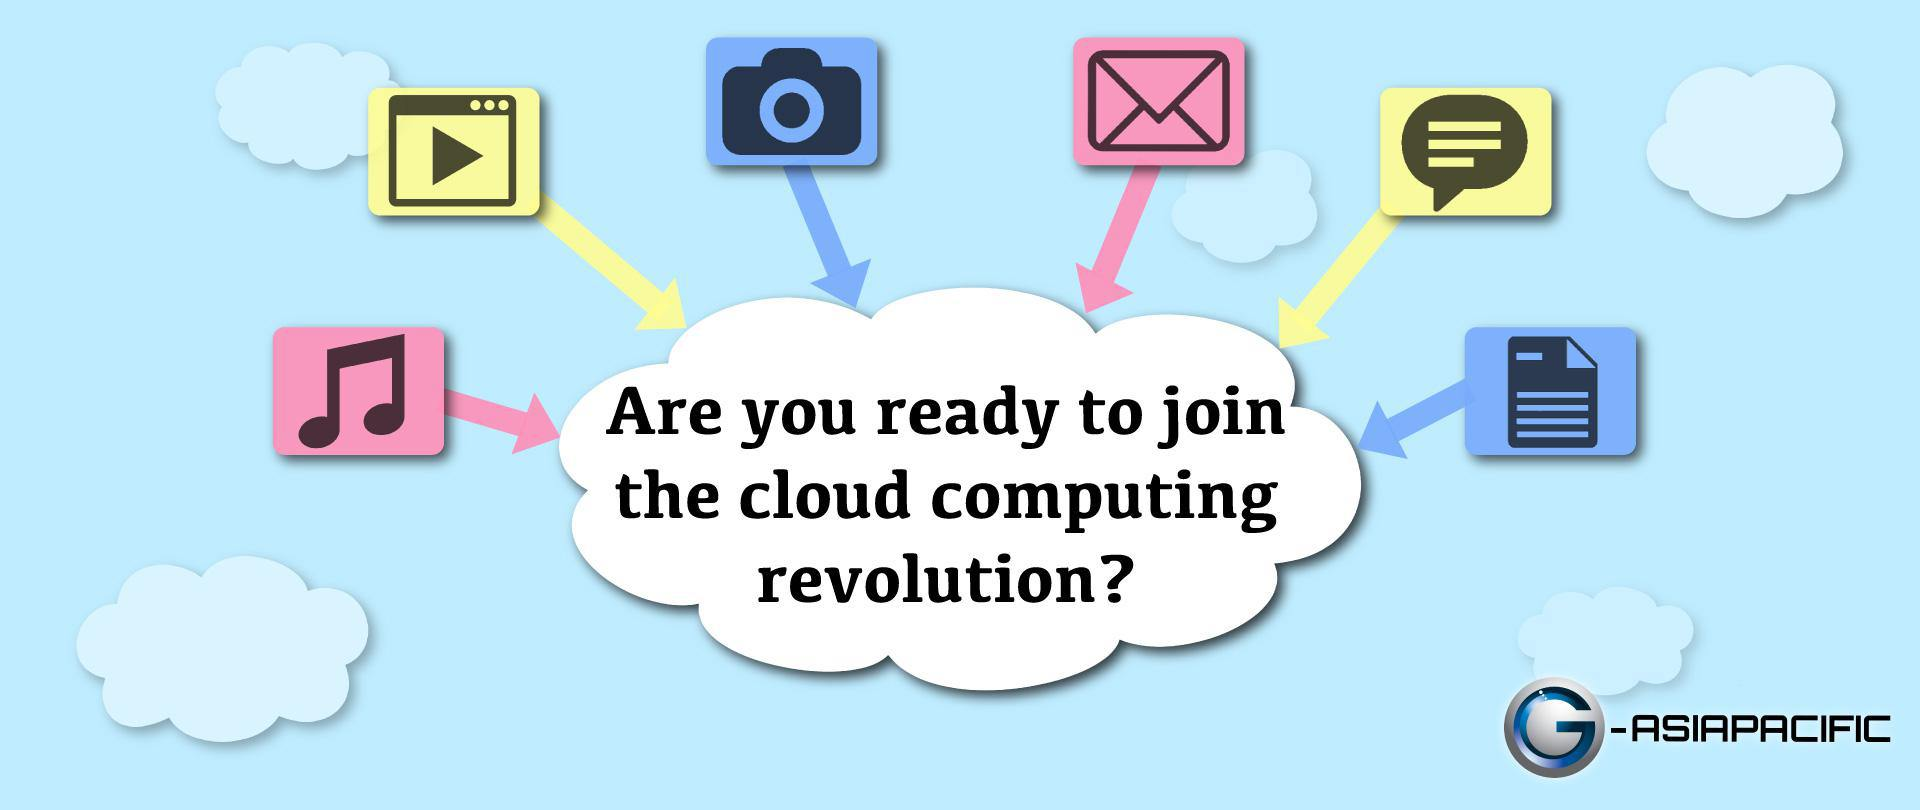 the cloud with camera, mail, documents icons pointed to it